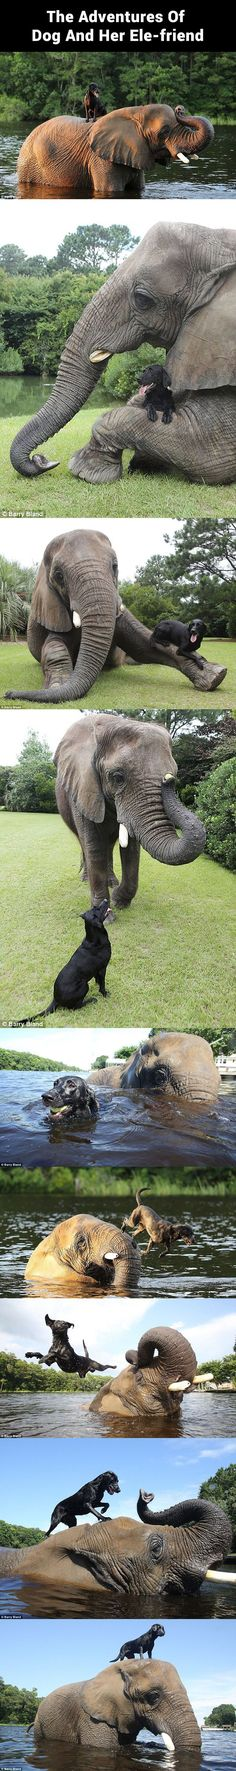 Elephant plays fetch with her puppy pal!  I love the 7th pic, they look so fabulous together.